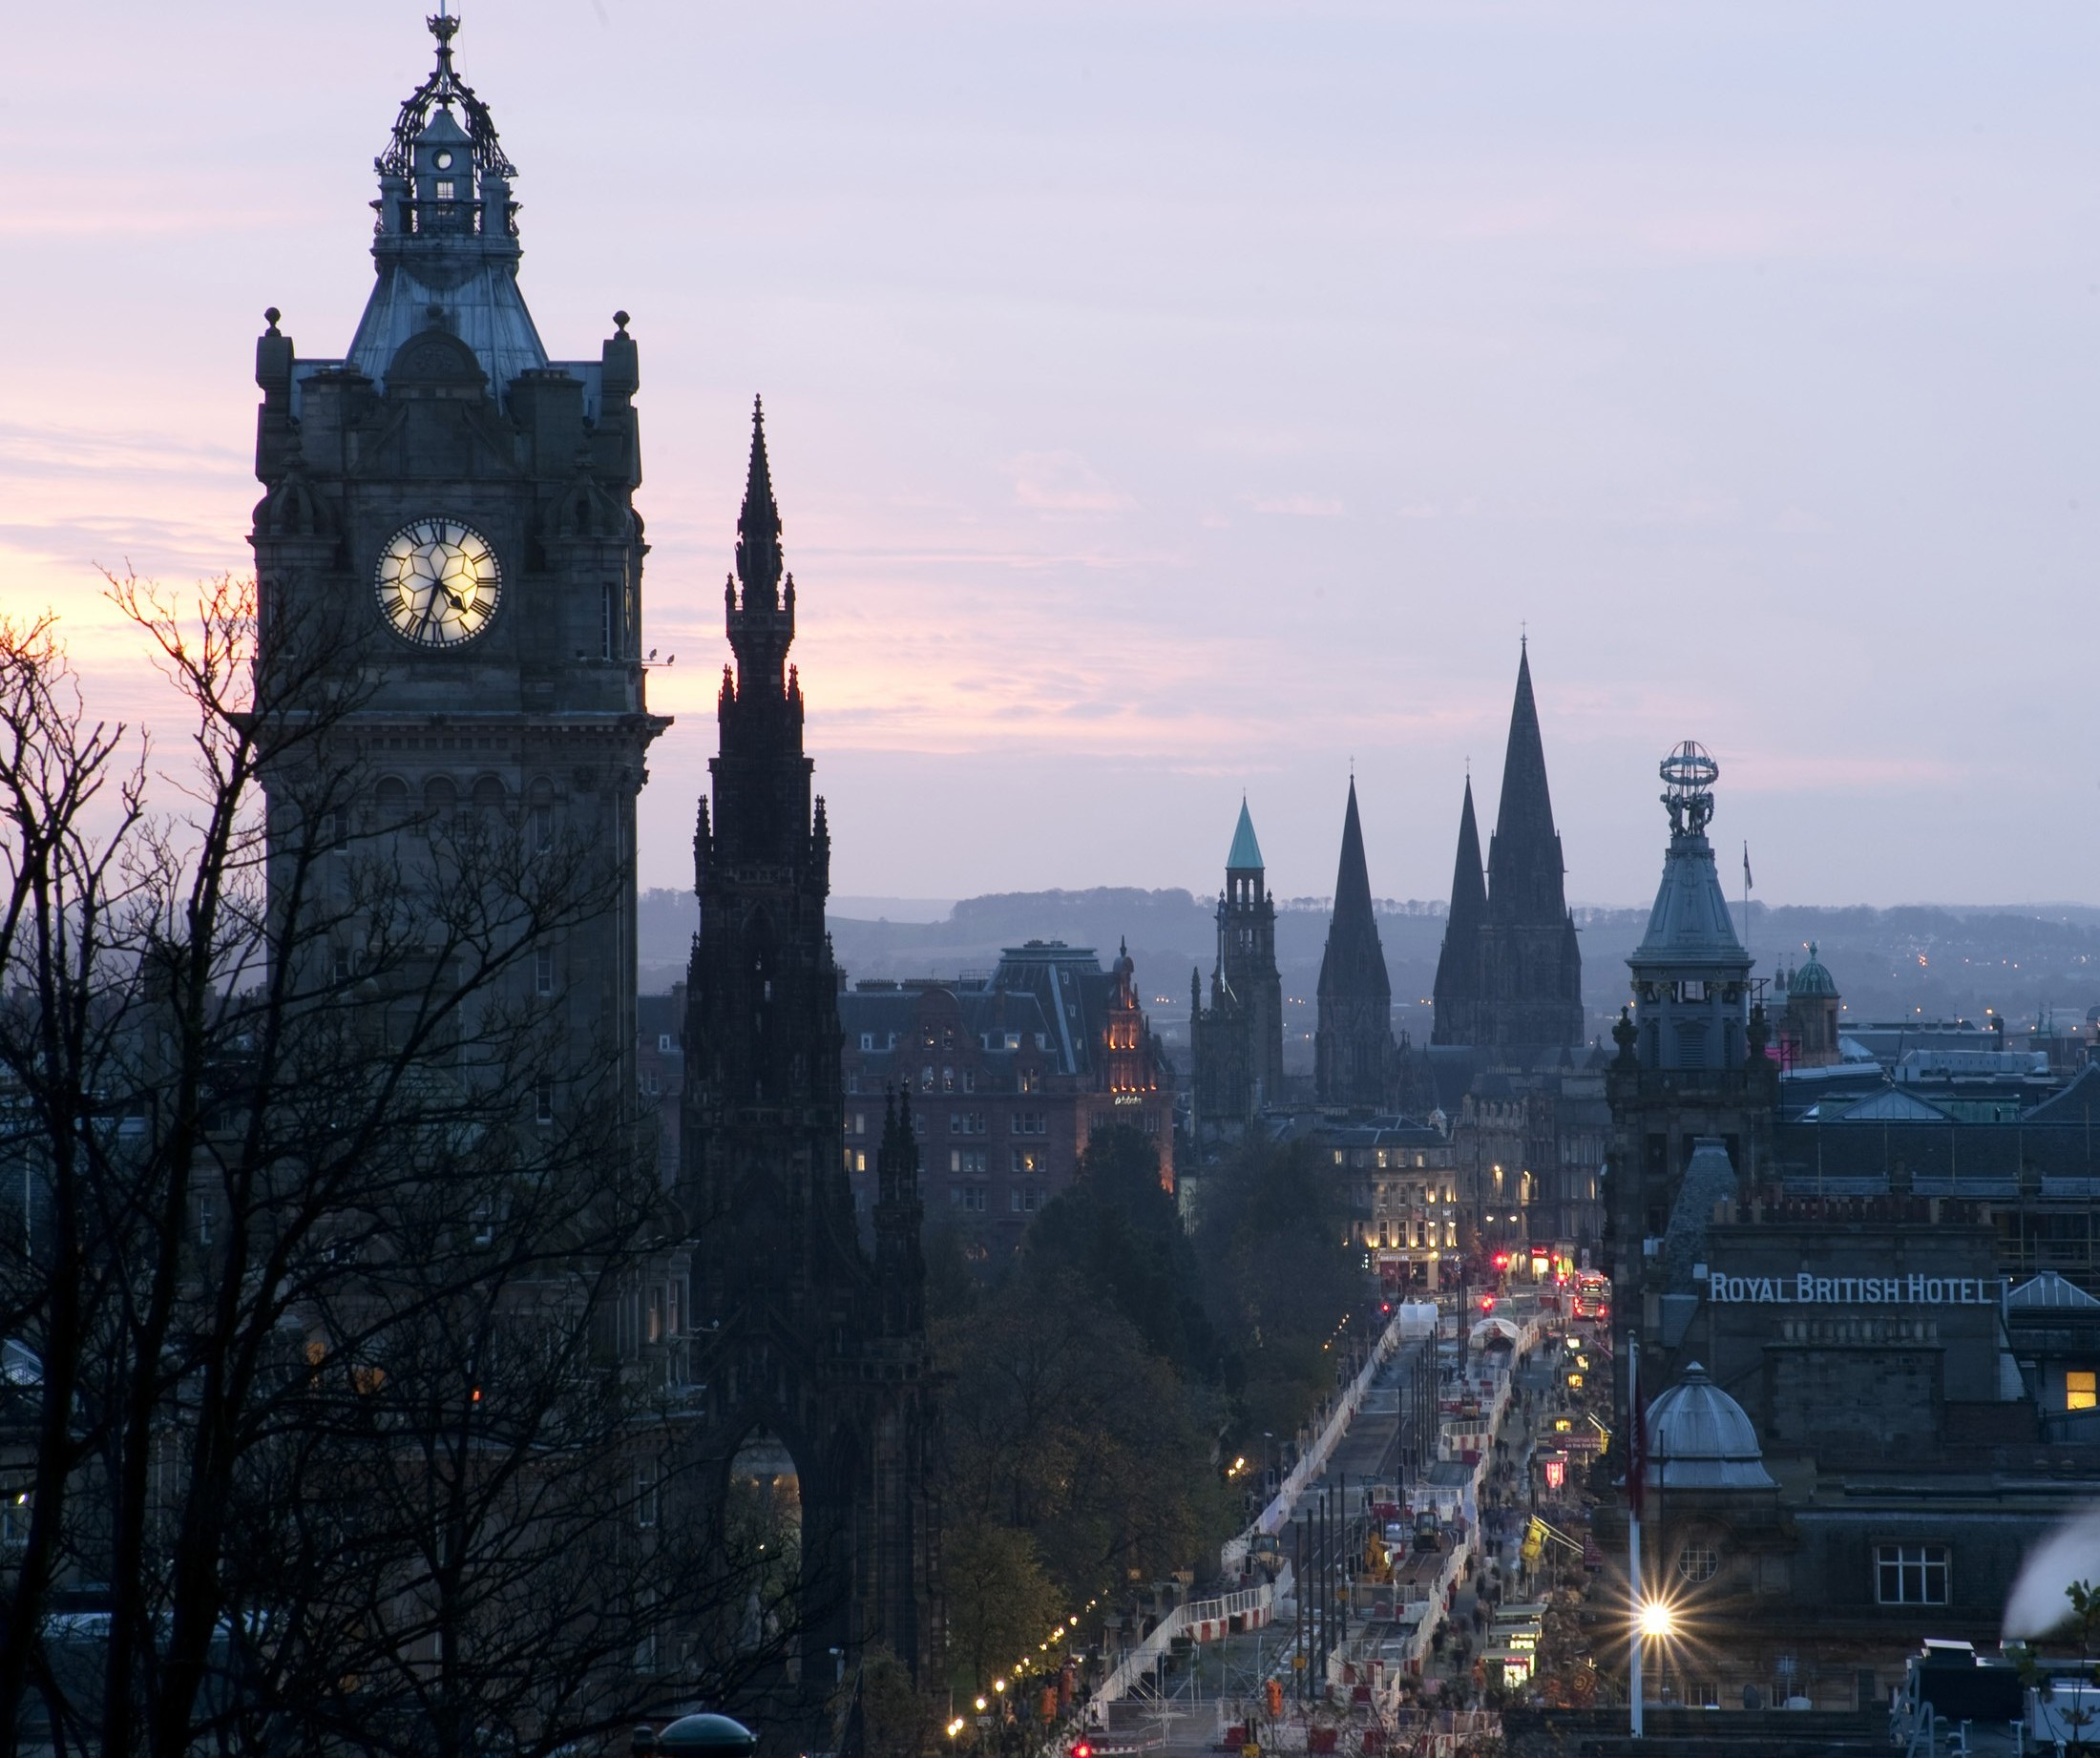 Skyline of spires and towers along princes street Edinburgh, the so called Athens of the North